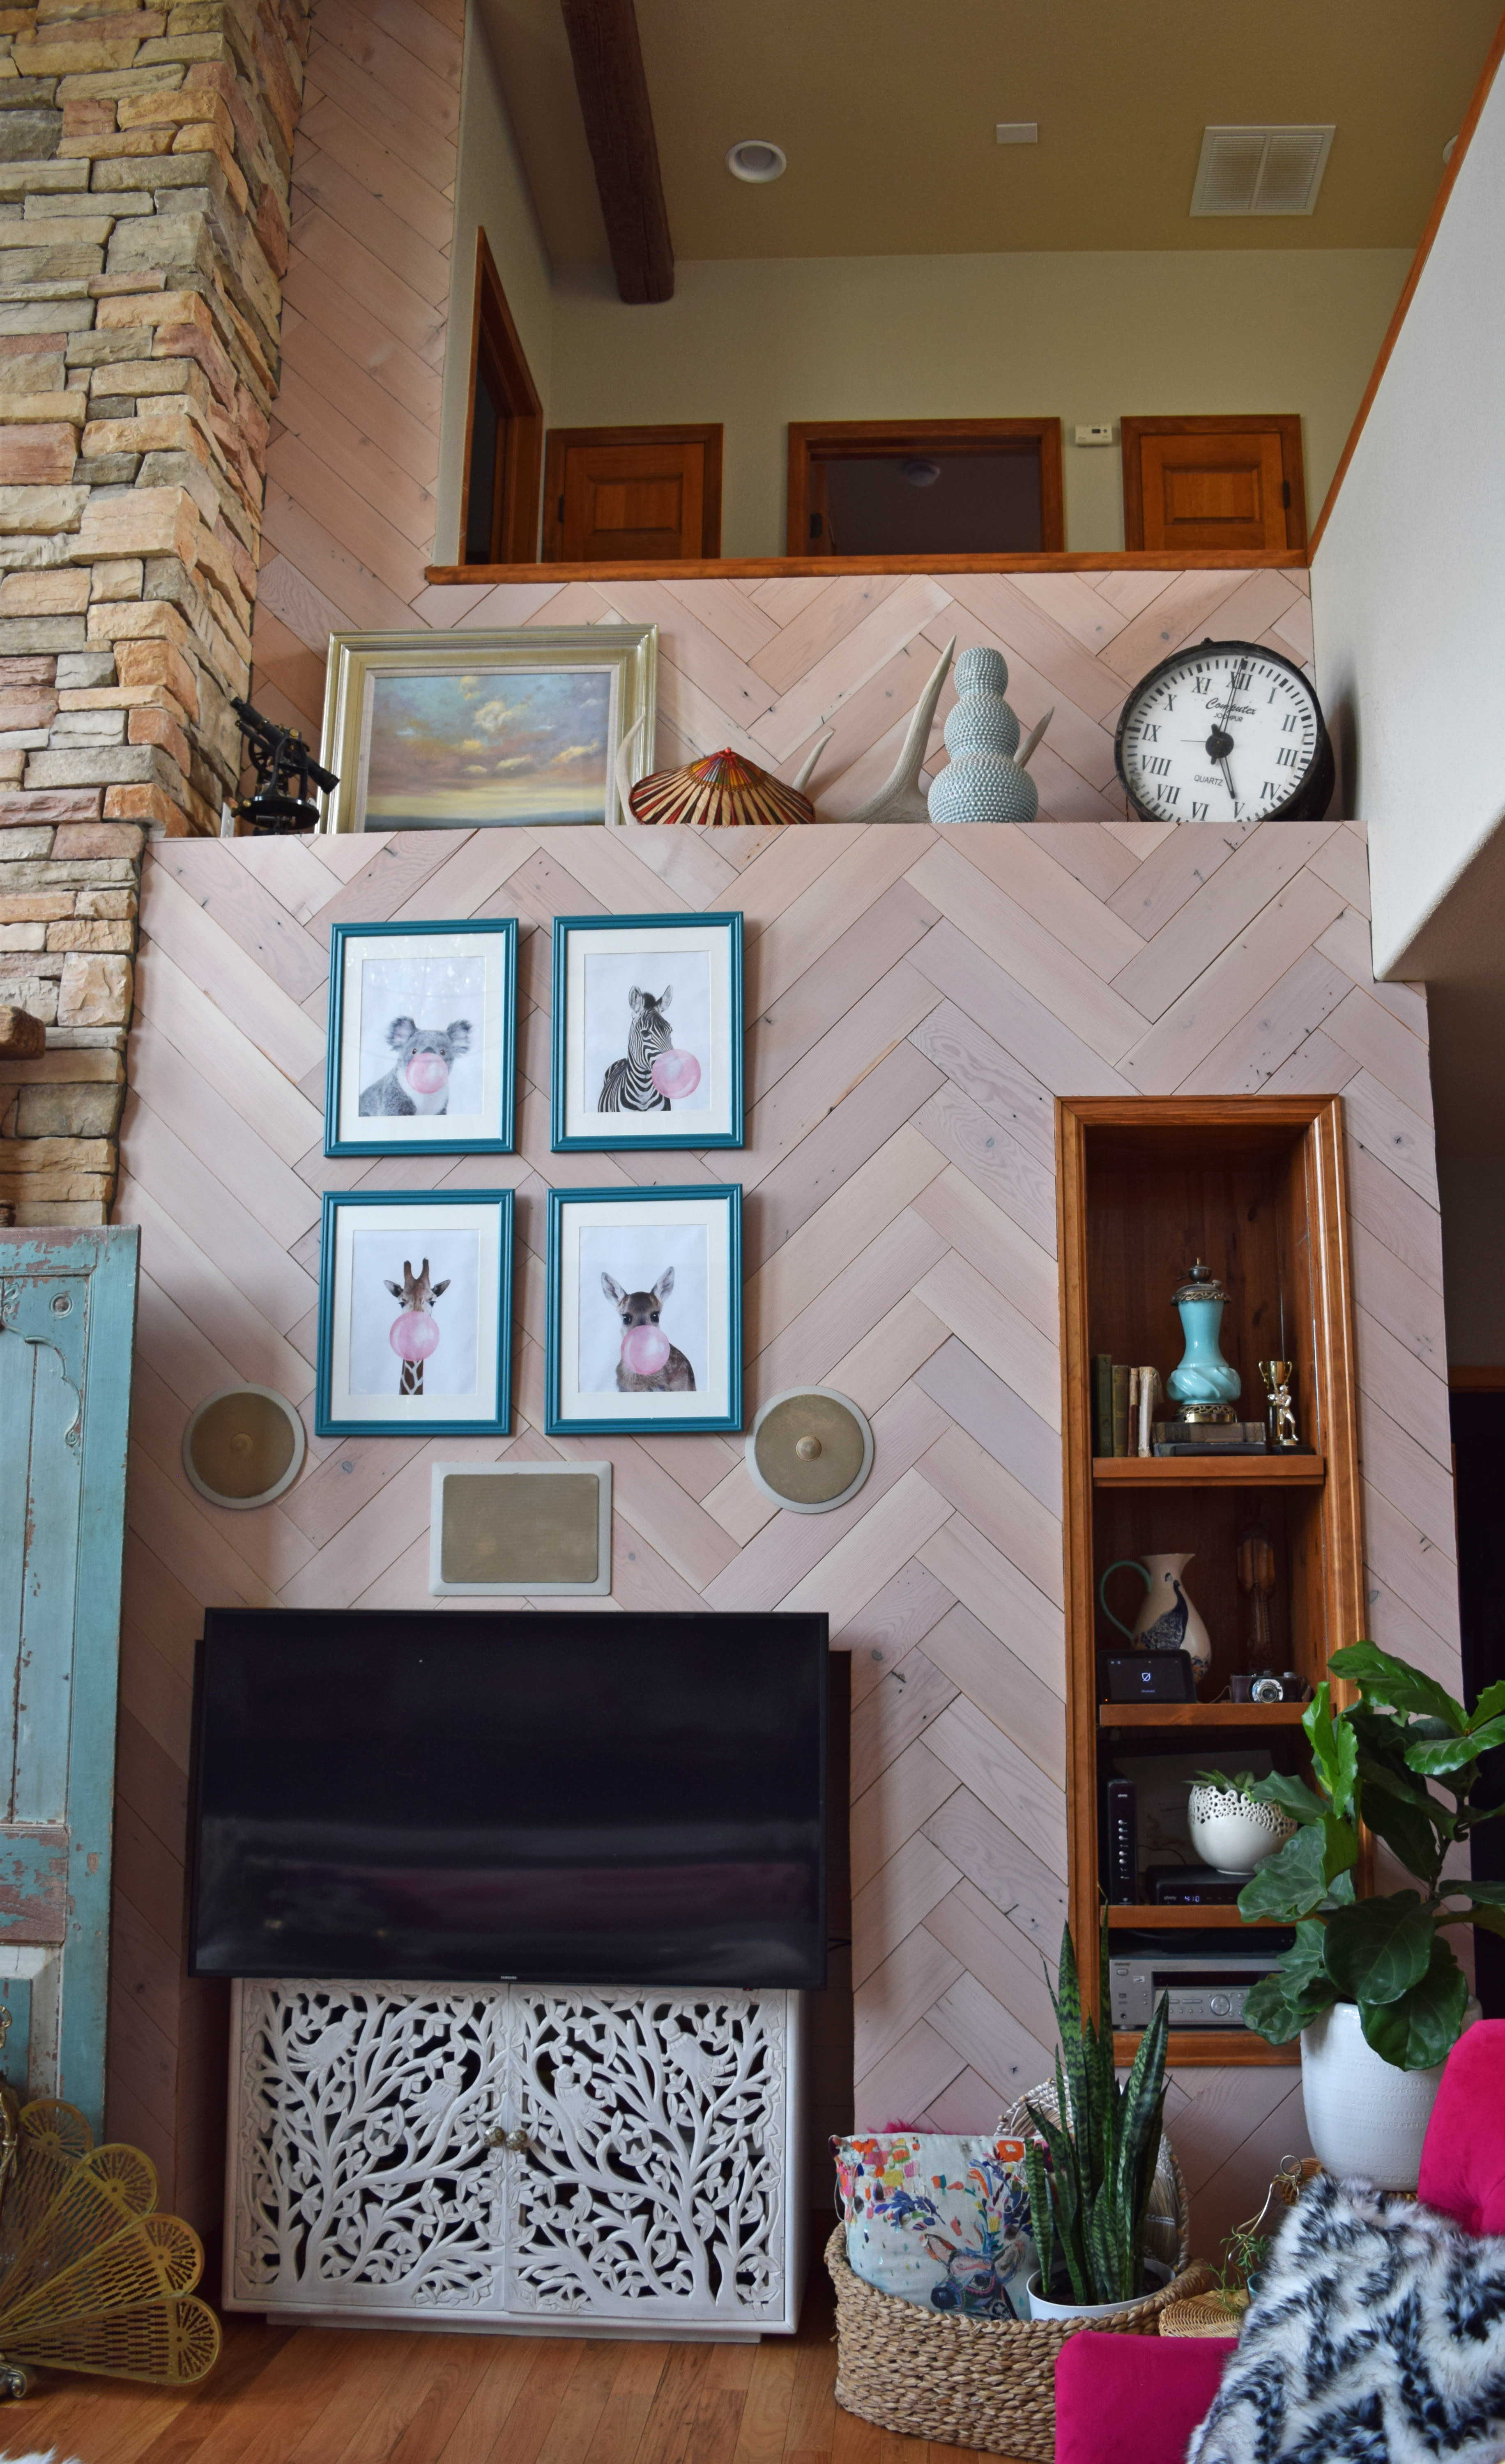 Southwest style BOHO living room with herringbone installation of Minimalist fir Stikwood peel and stik wood wall and ceiling planks.